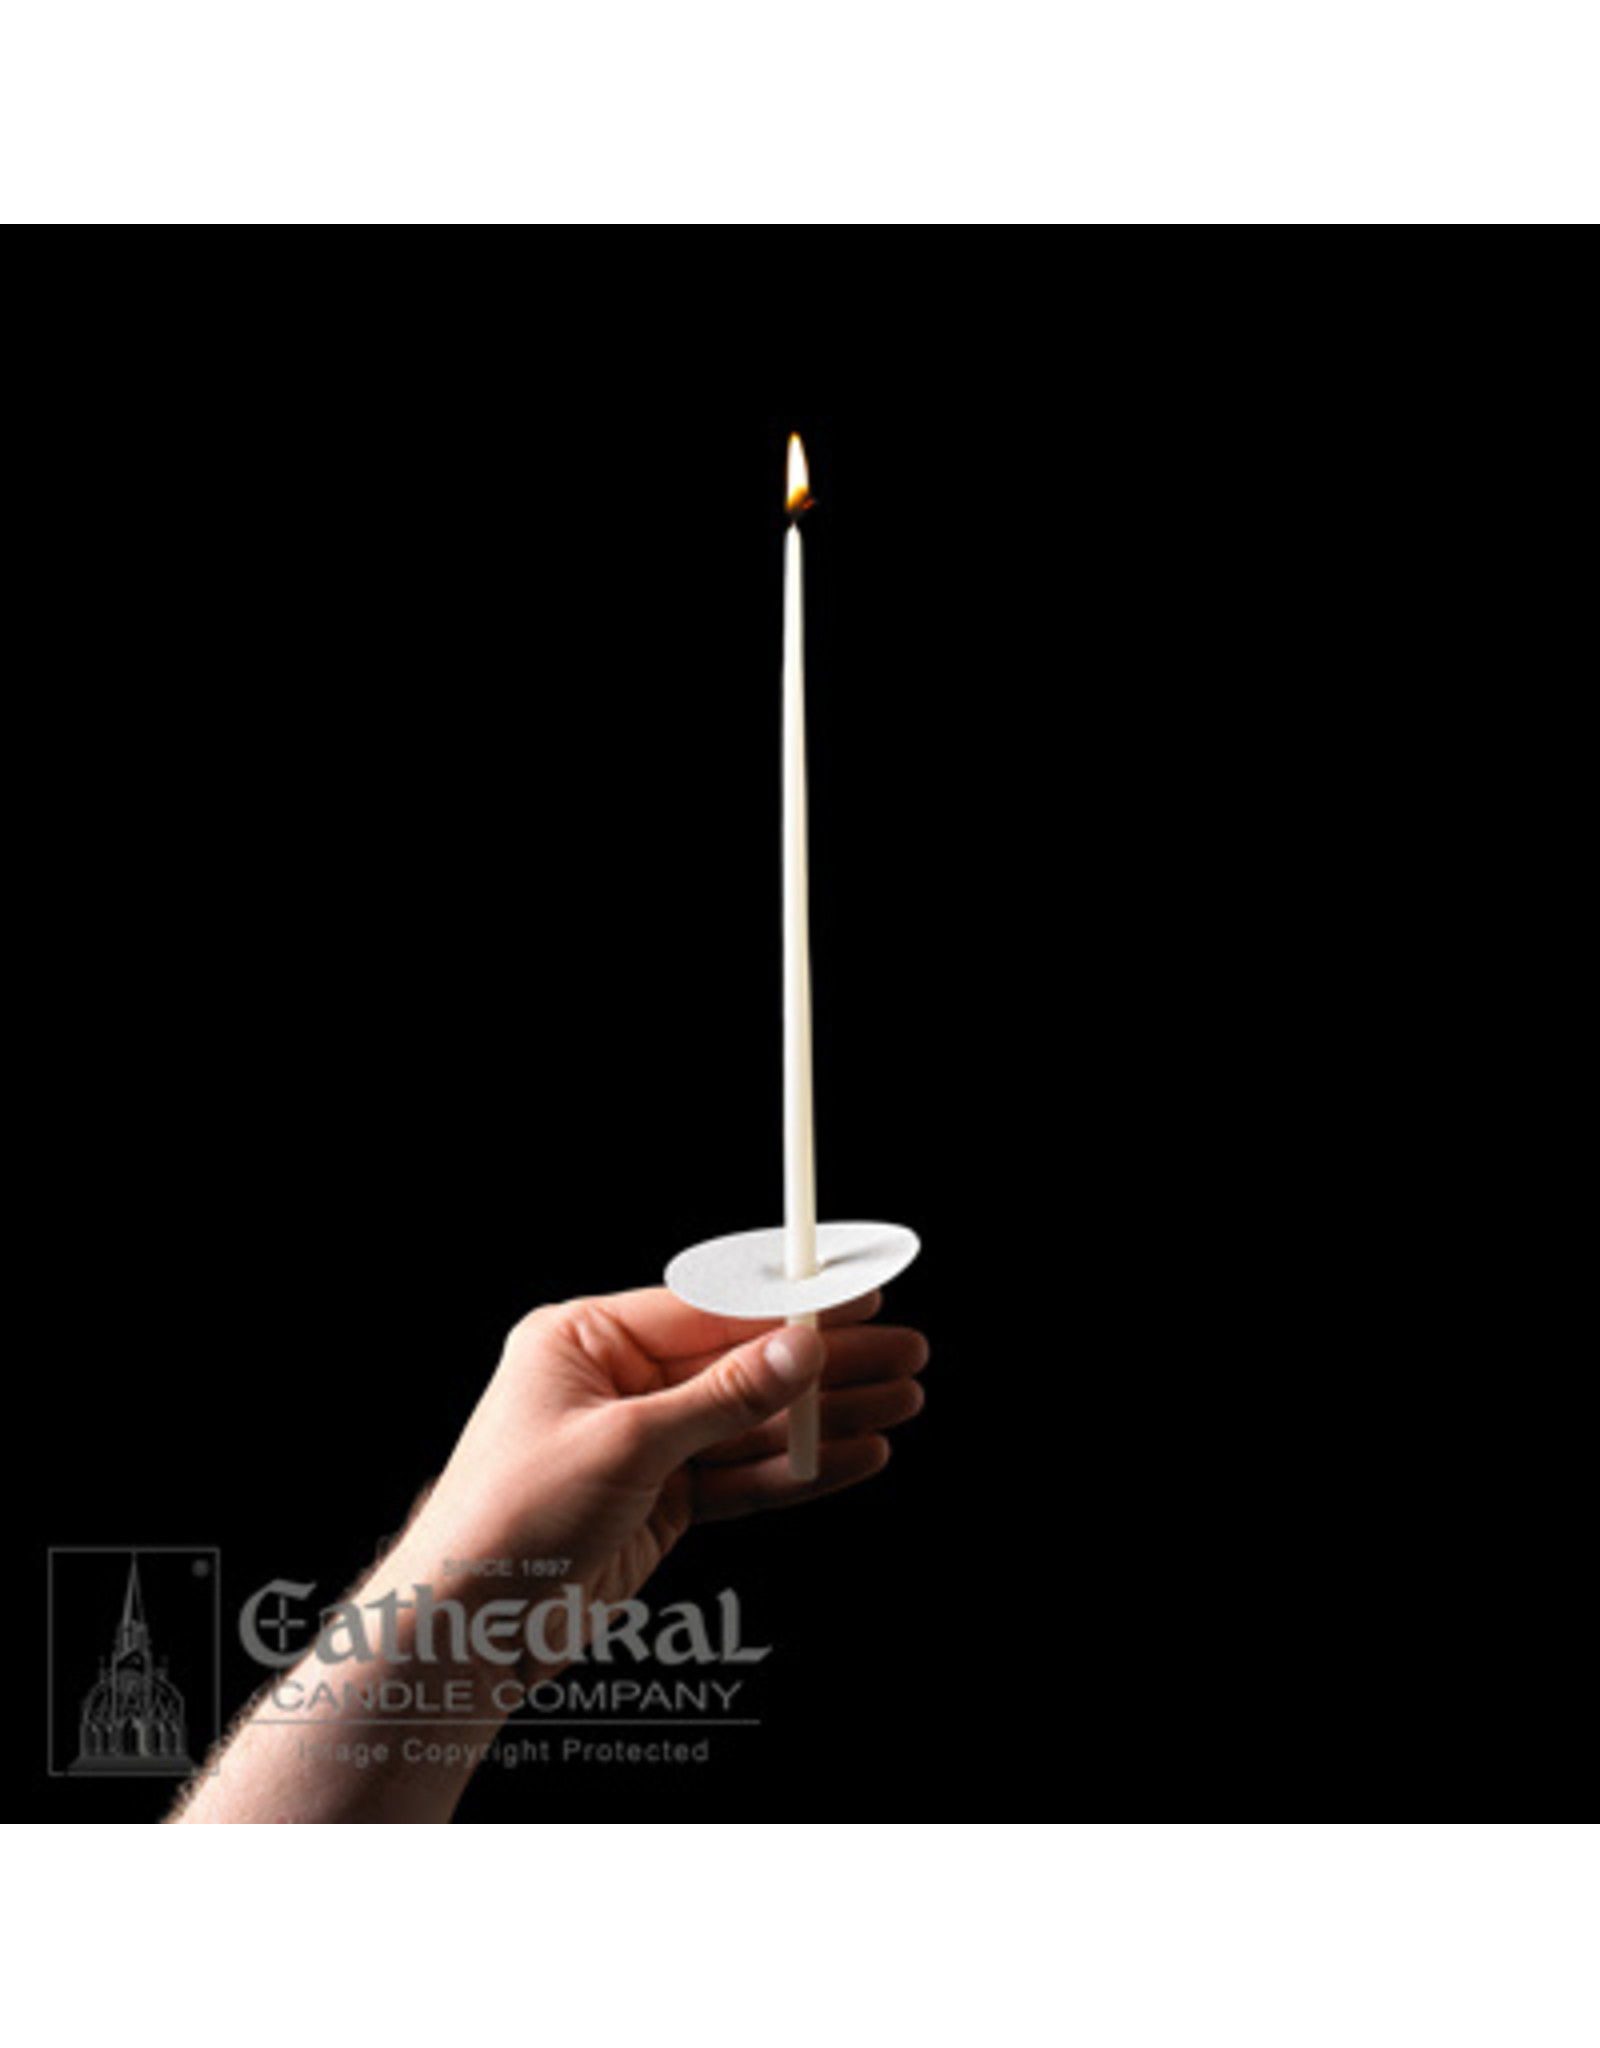 """Congregational Candles 11"""" Taper 51% Beeswax w/Paper Drip Protectors (100)"""